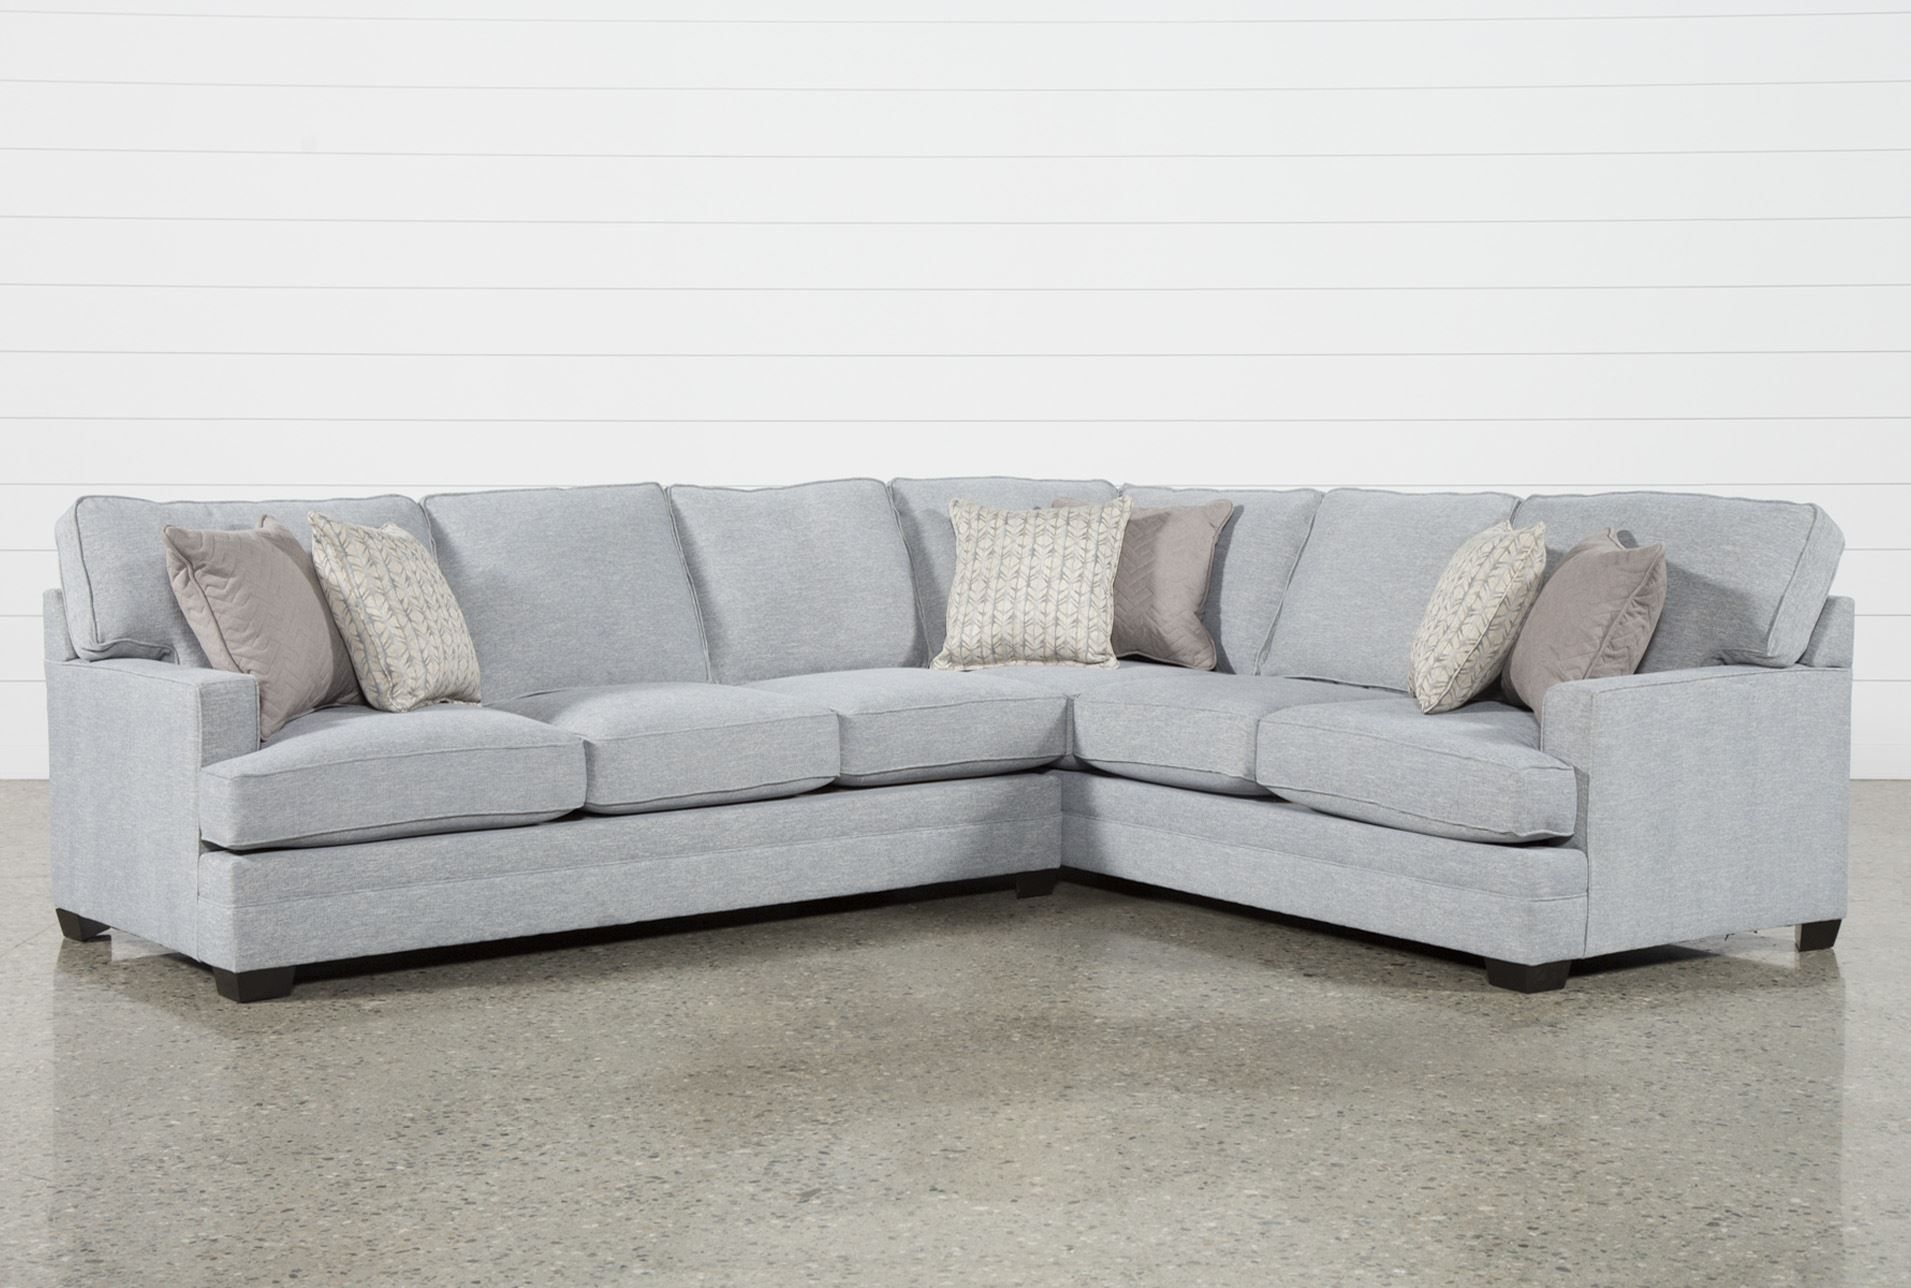 Josephine 2 Piece Sectional W/laf Sofa | Decorating And Interiors Regarding Harper Foam 3 Piece Sectionals With Raf Chaise (Photo 3 of 25)